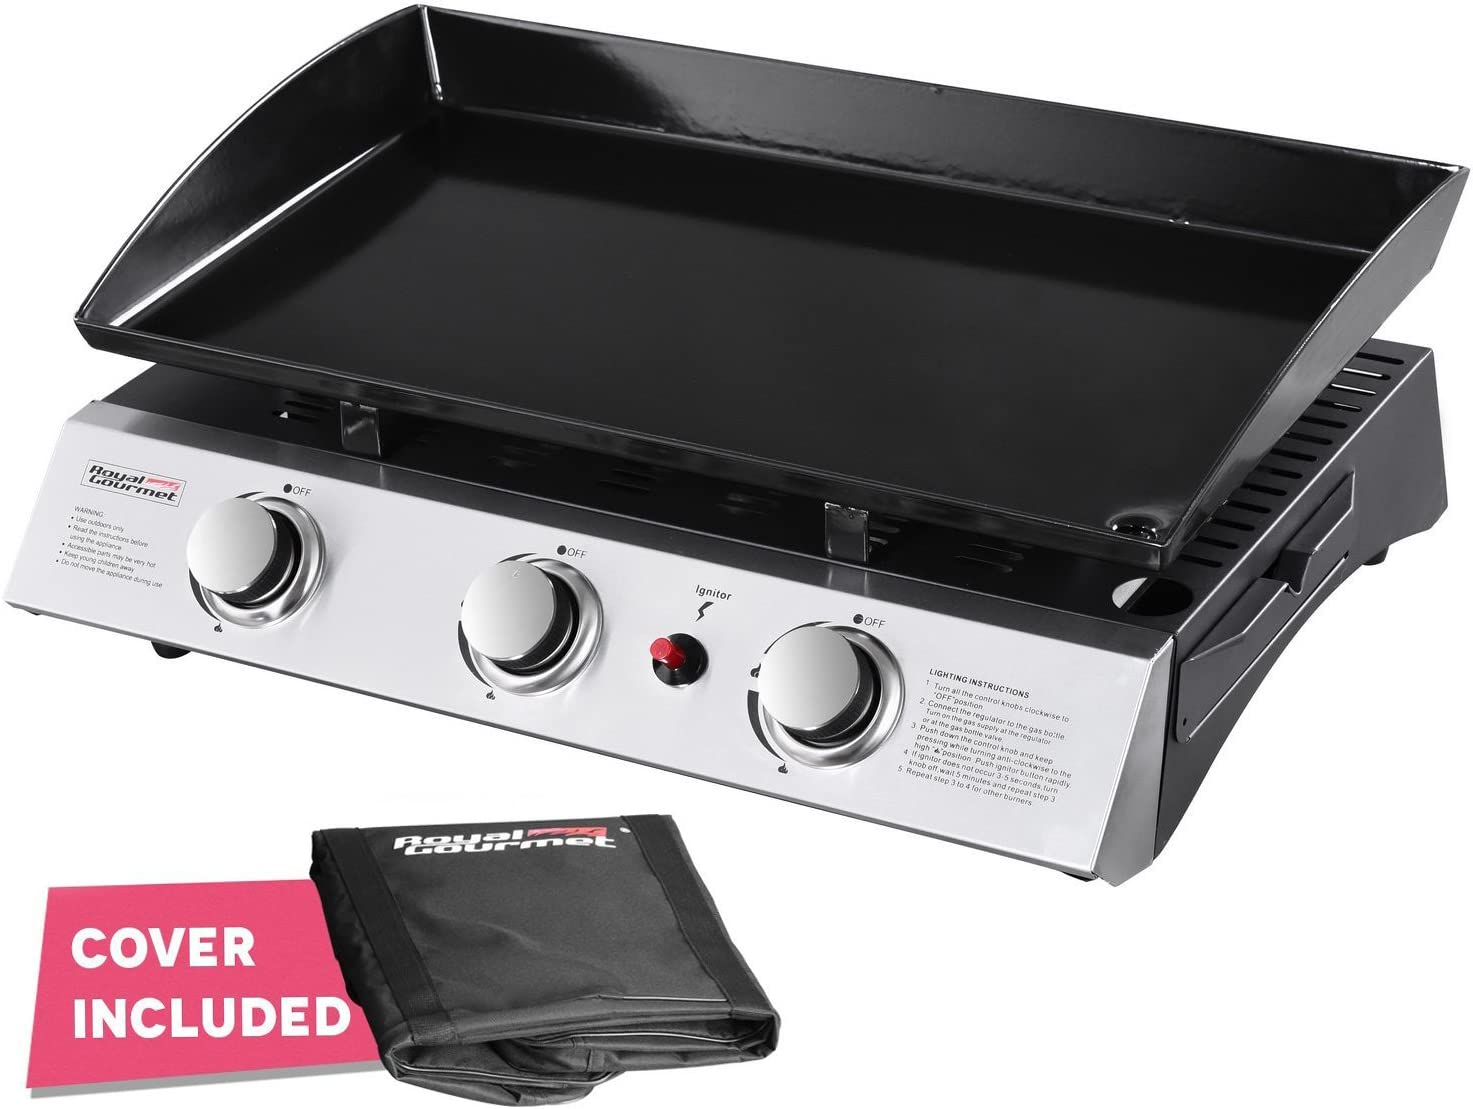 Best for the beginners: Royal Gourmet PD1300 Gas Griddle